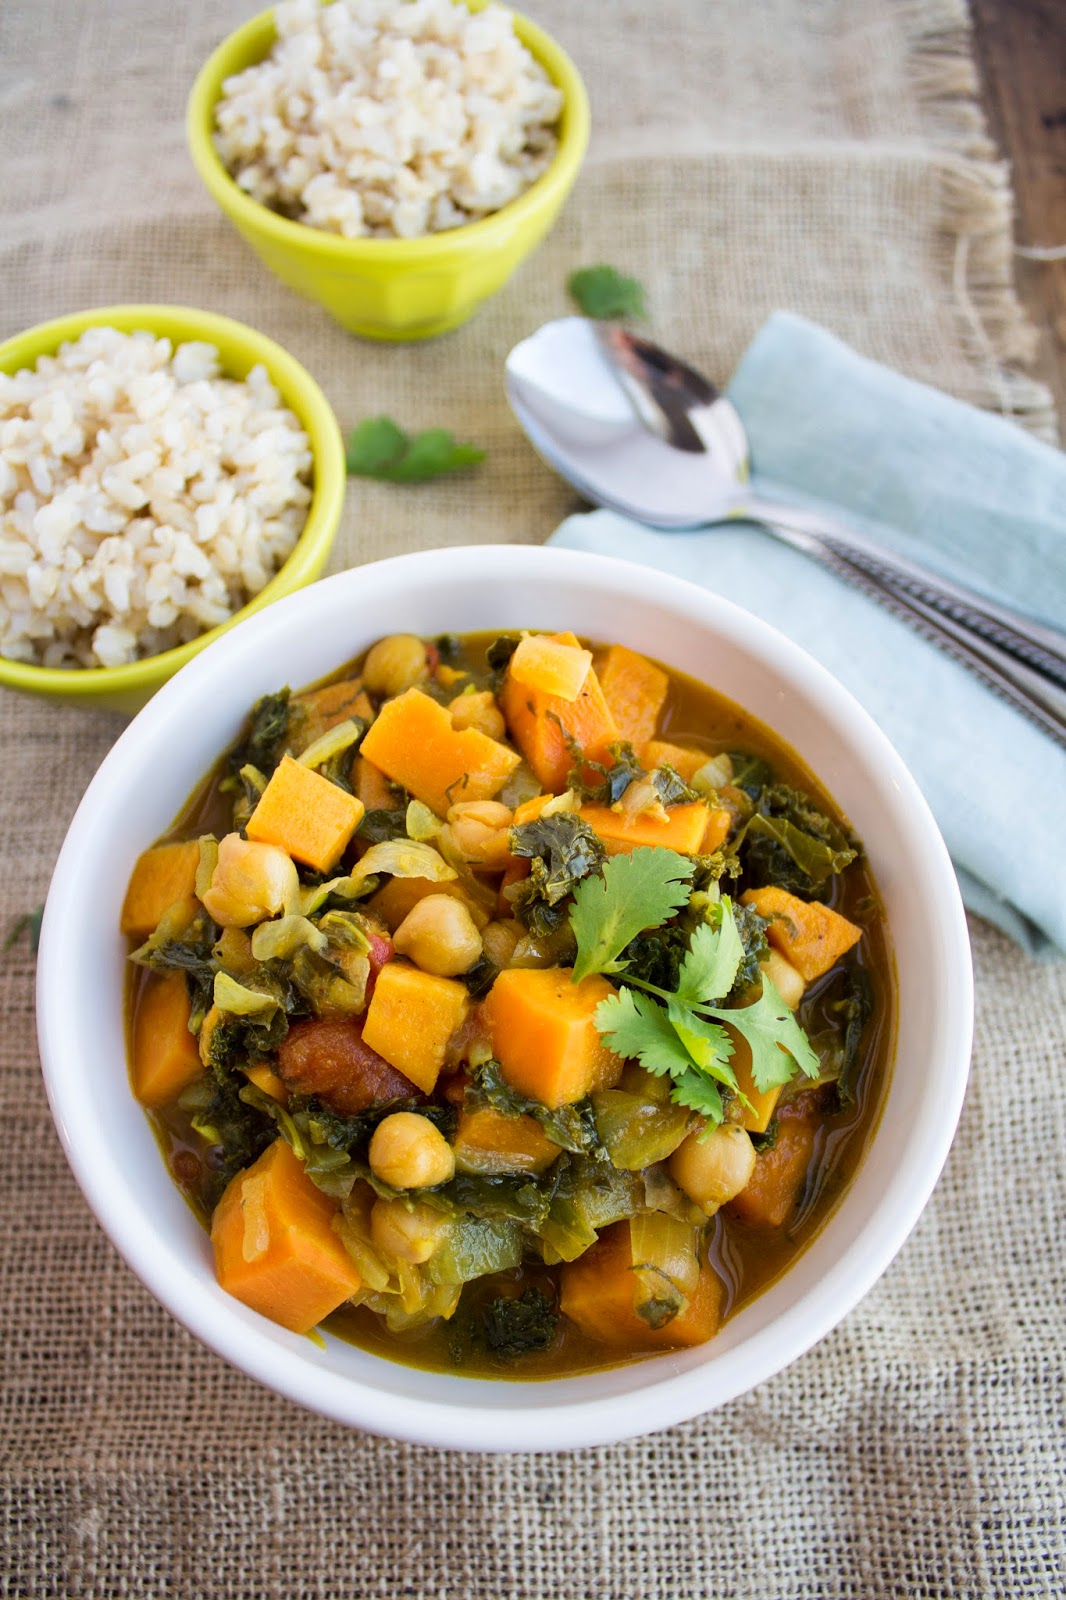 Jackie Cooks: Kale, Sweet Potato, and Chickpea Curry